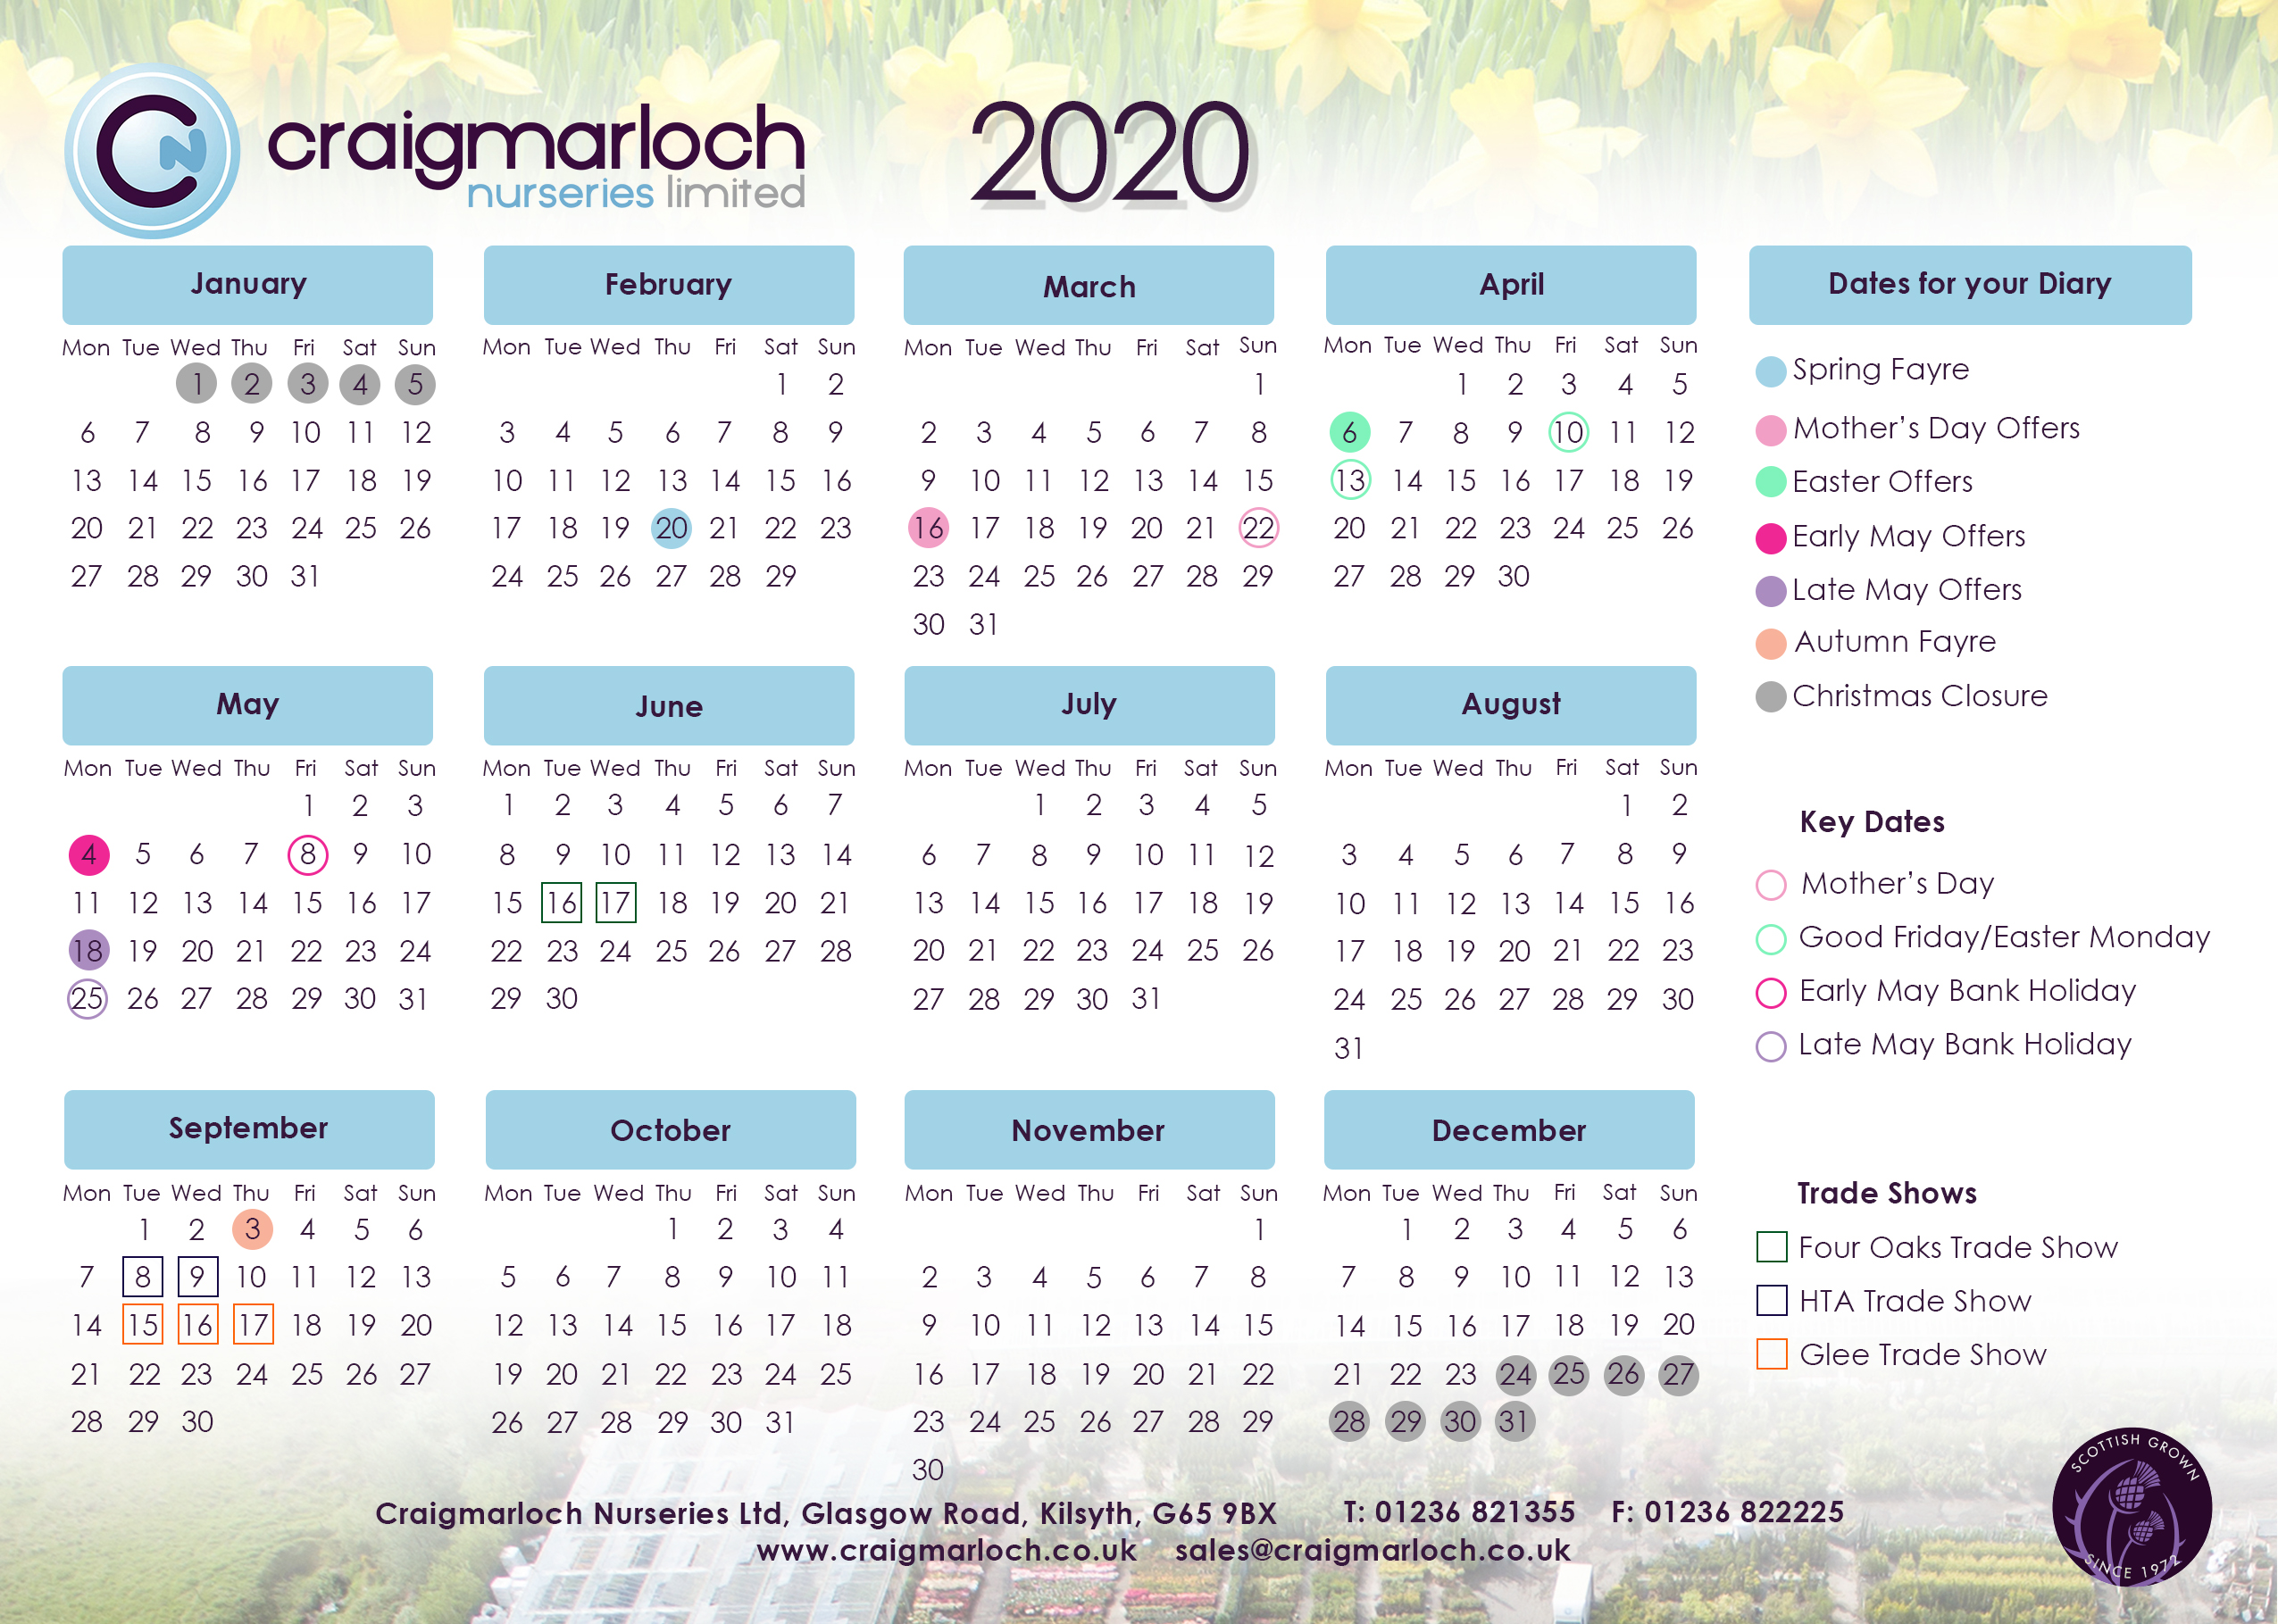 Dates For Your Diary 2020